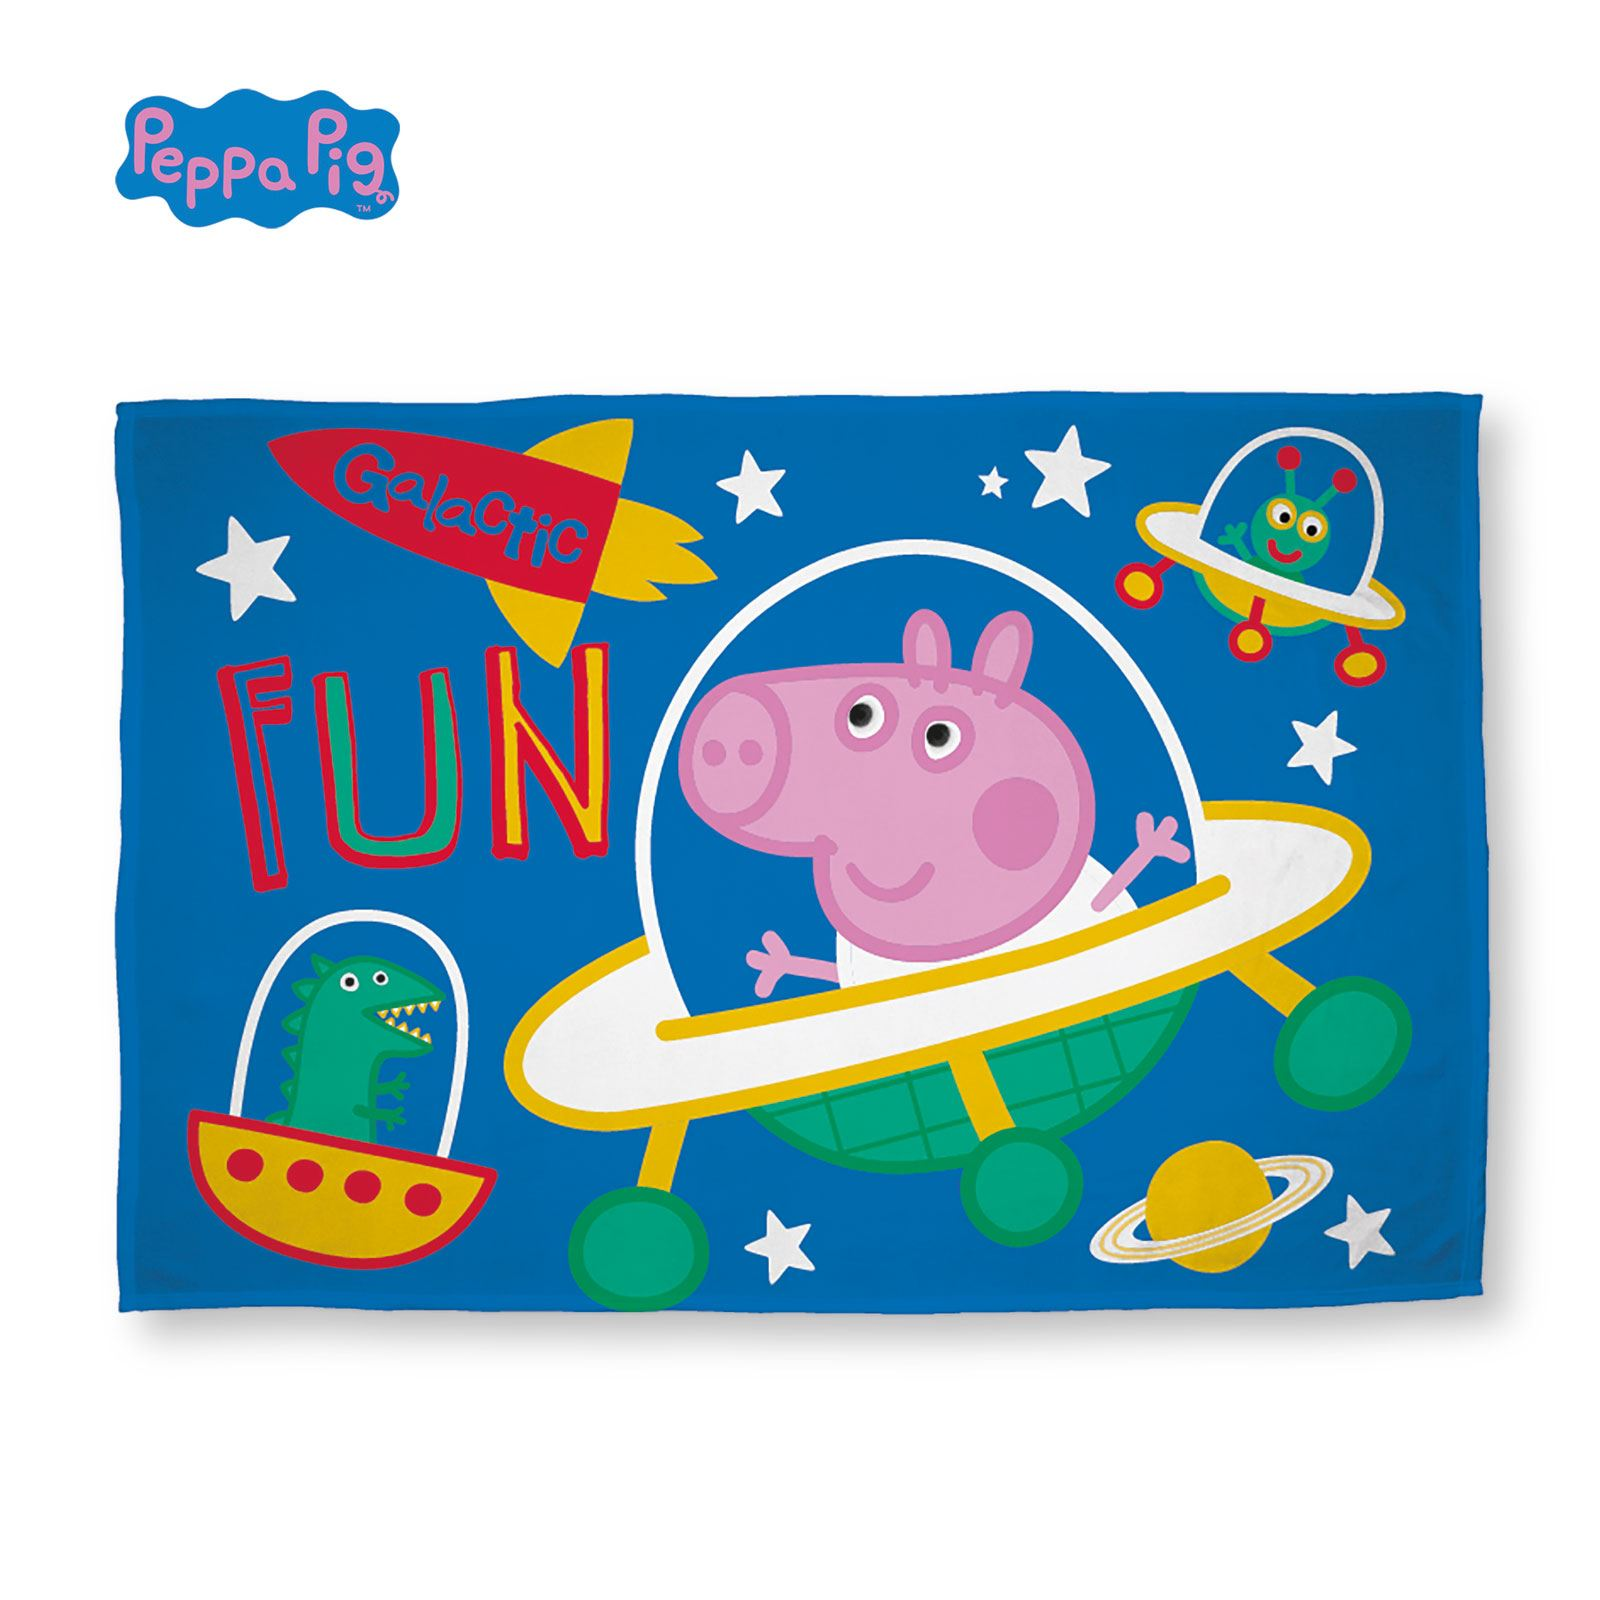 Peppa Pig George Planets Single Duvet Cover Cushion